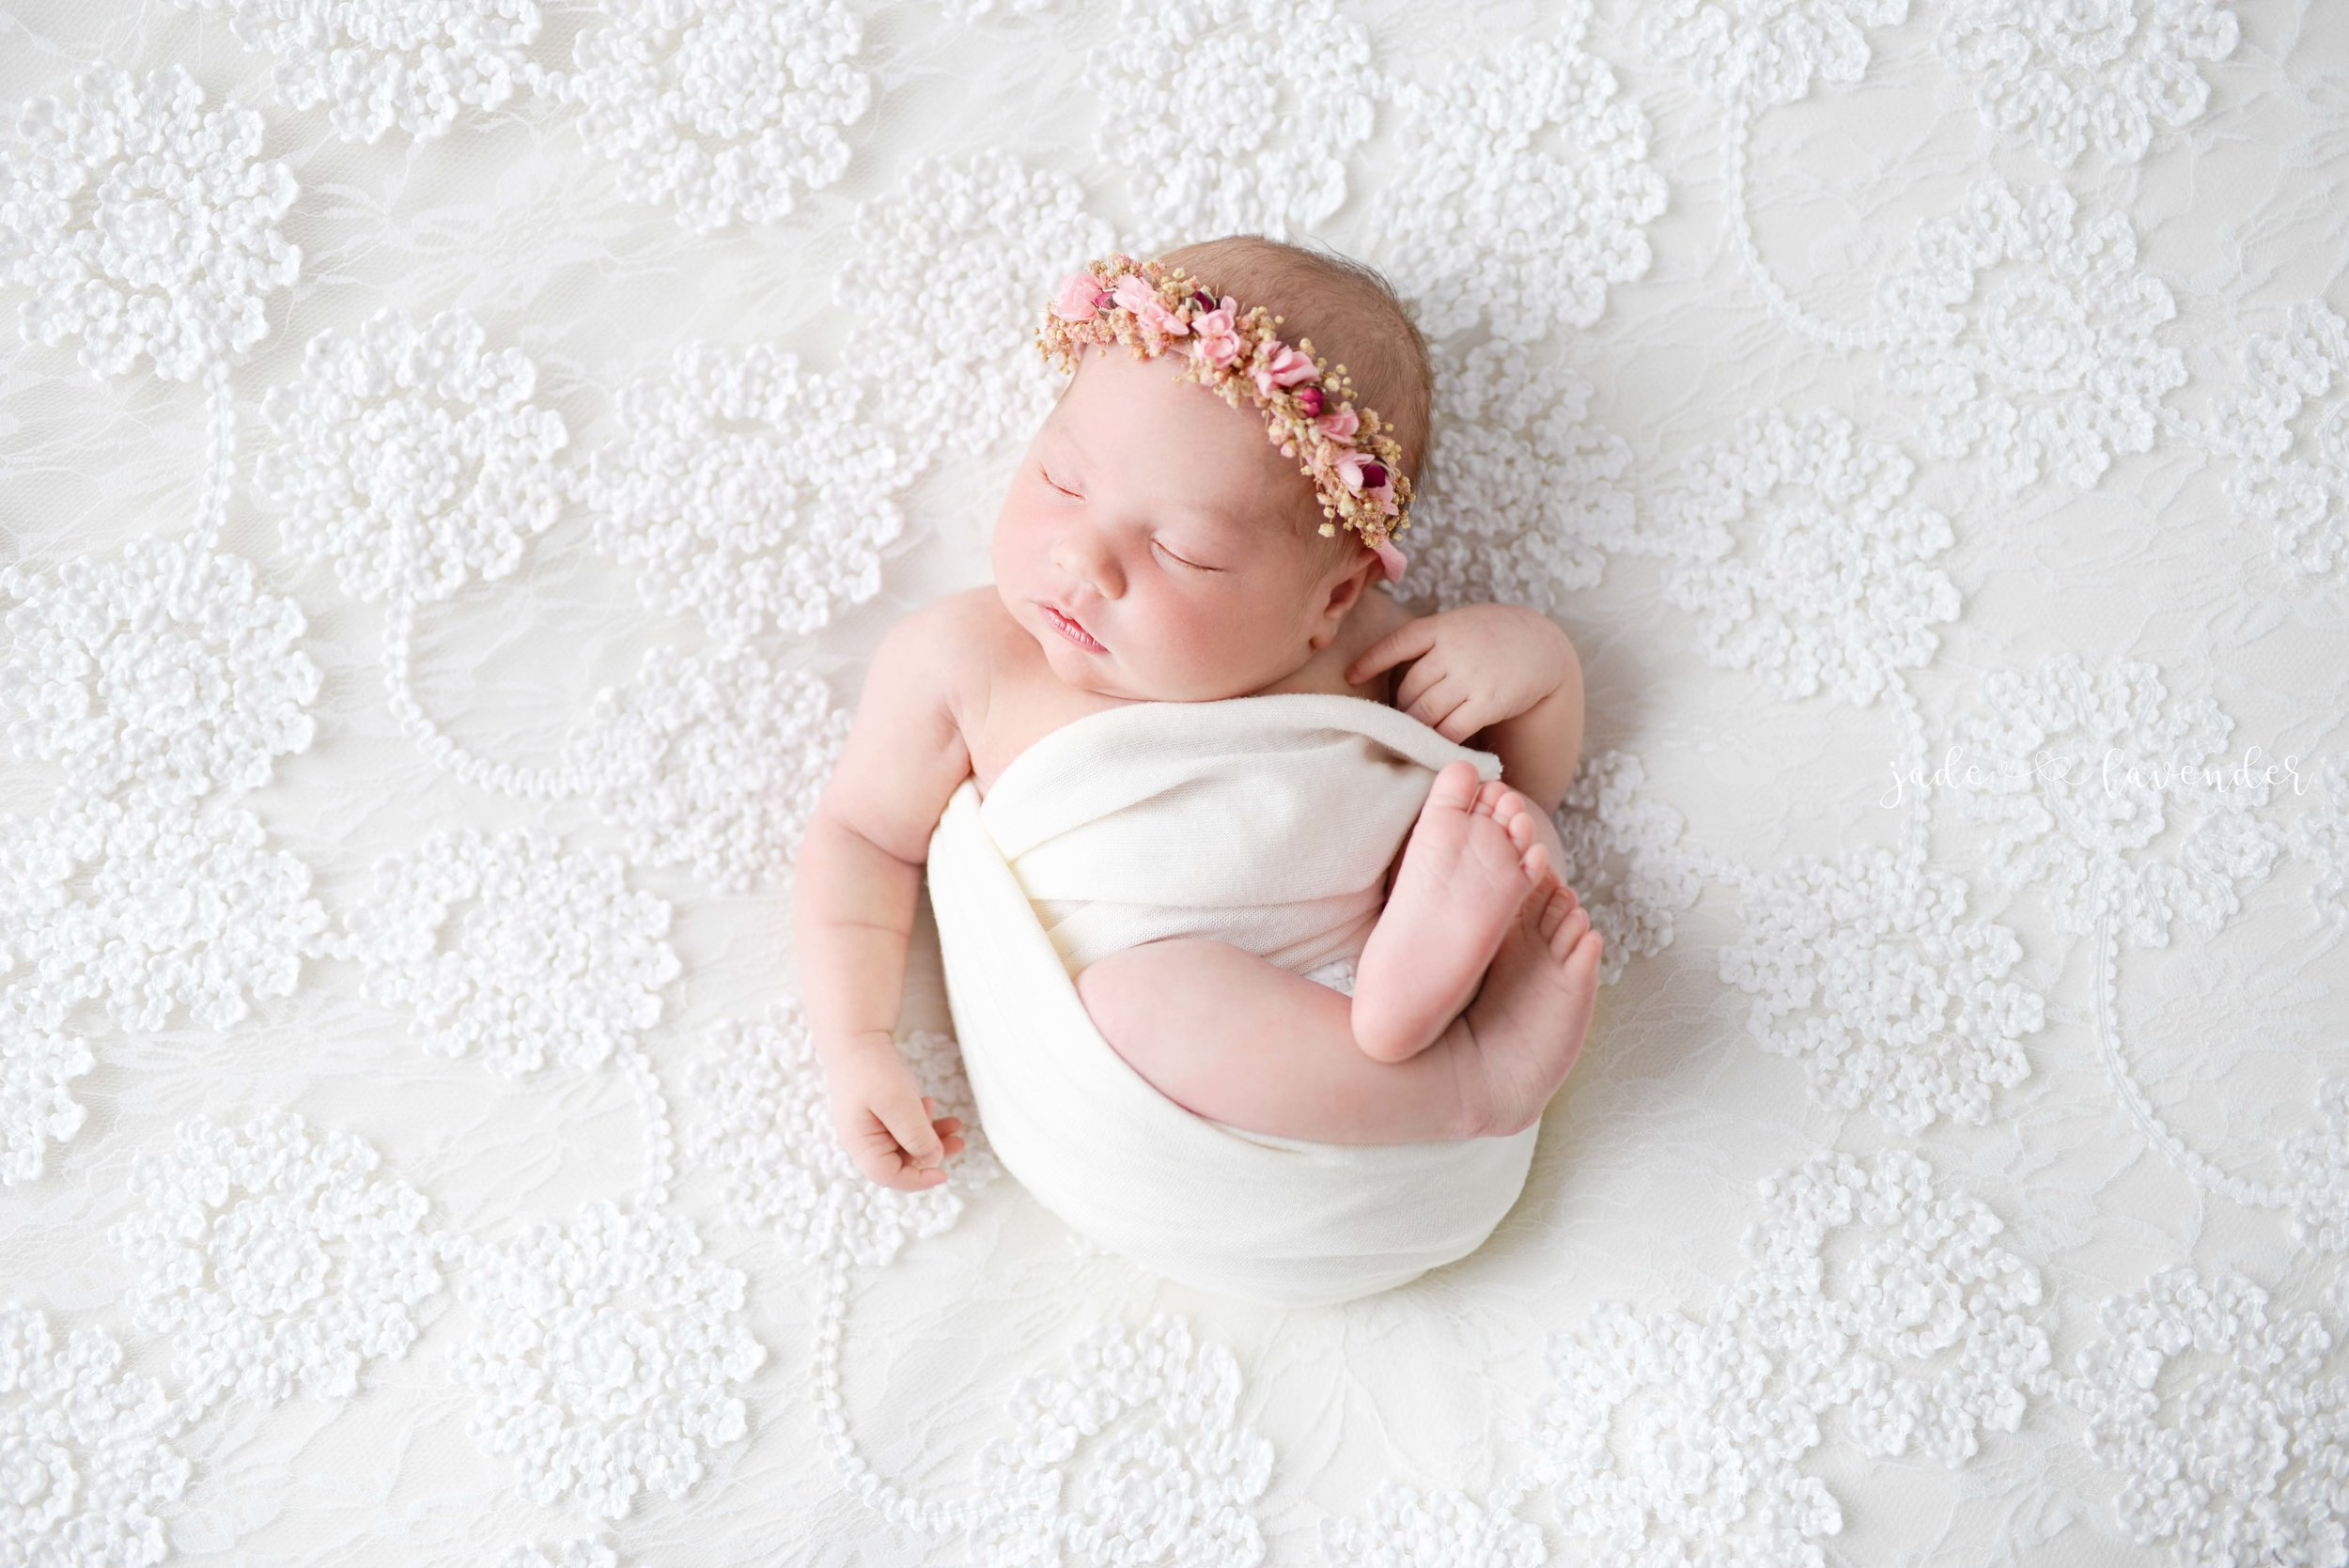 newborn-photography-baby-images-infant-photos-girl-floral-spokane-washington (1 of 6).jpg